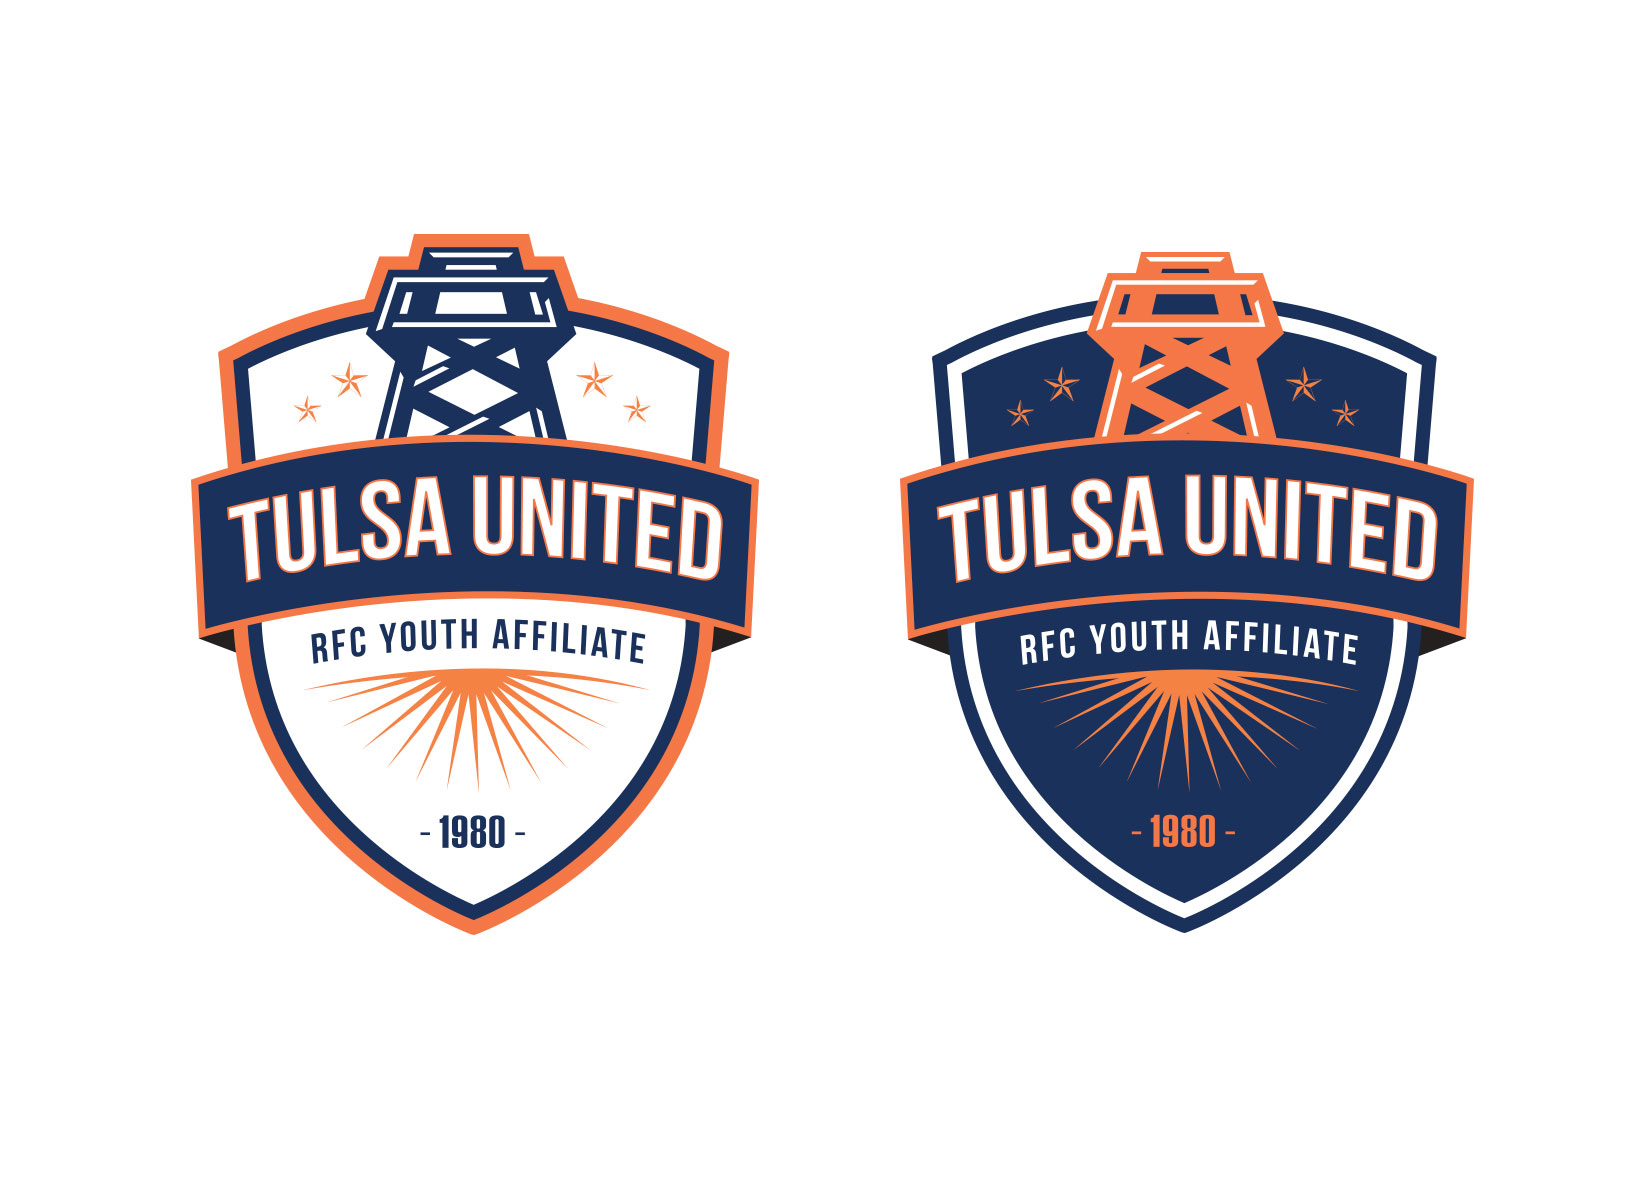 tulsa-united-custom-soccer-crest-designs-by-jordan-fretz.jpg